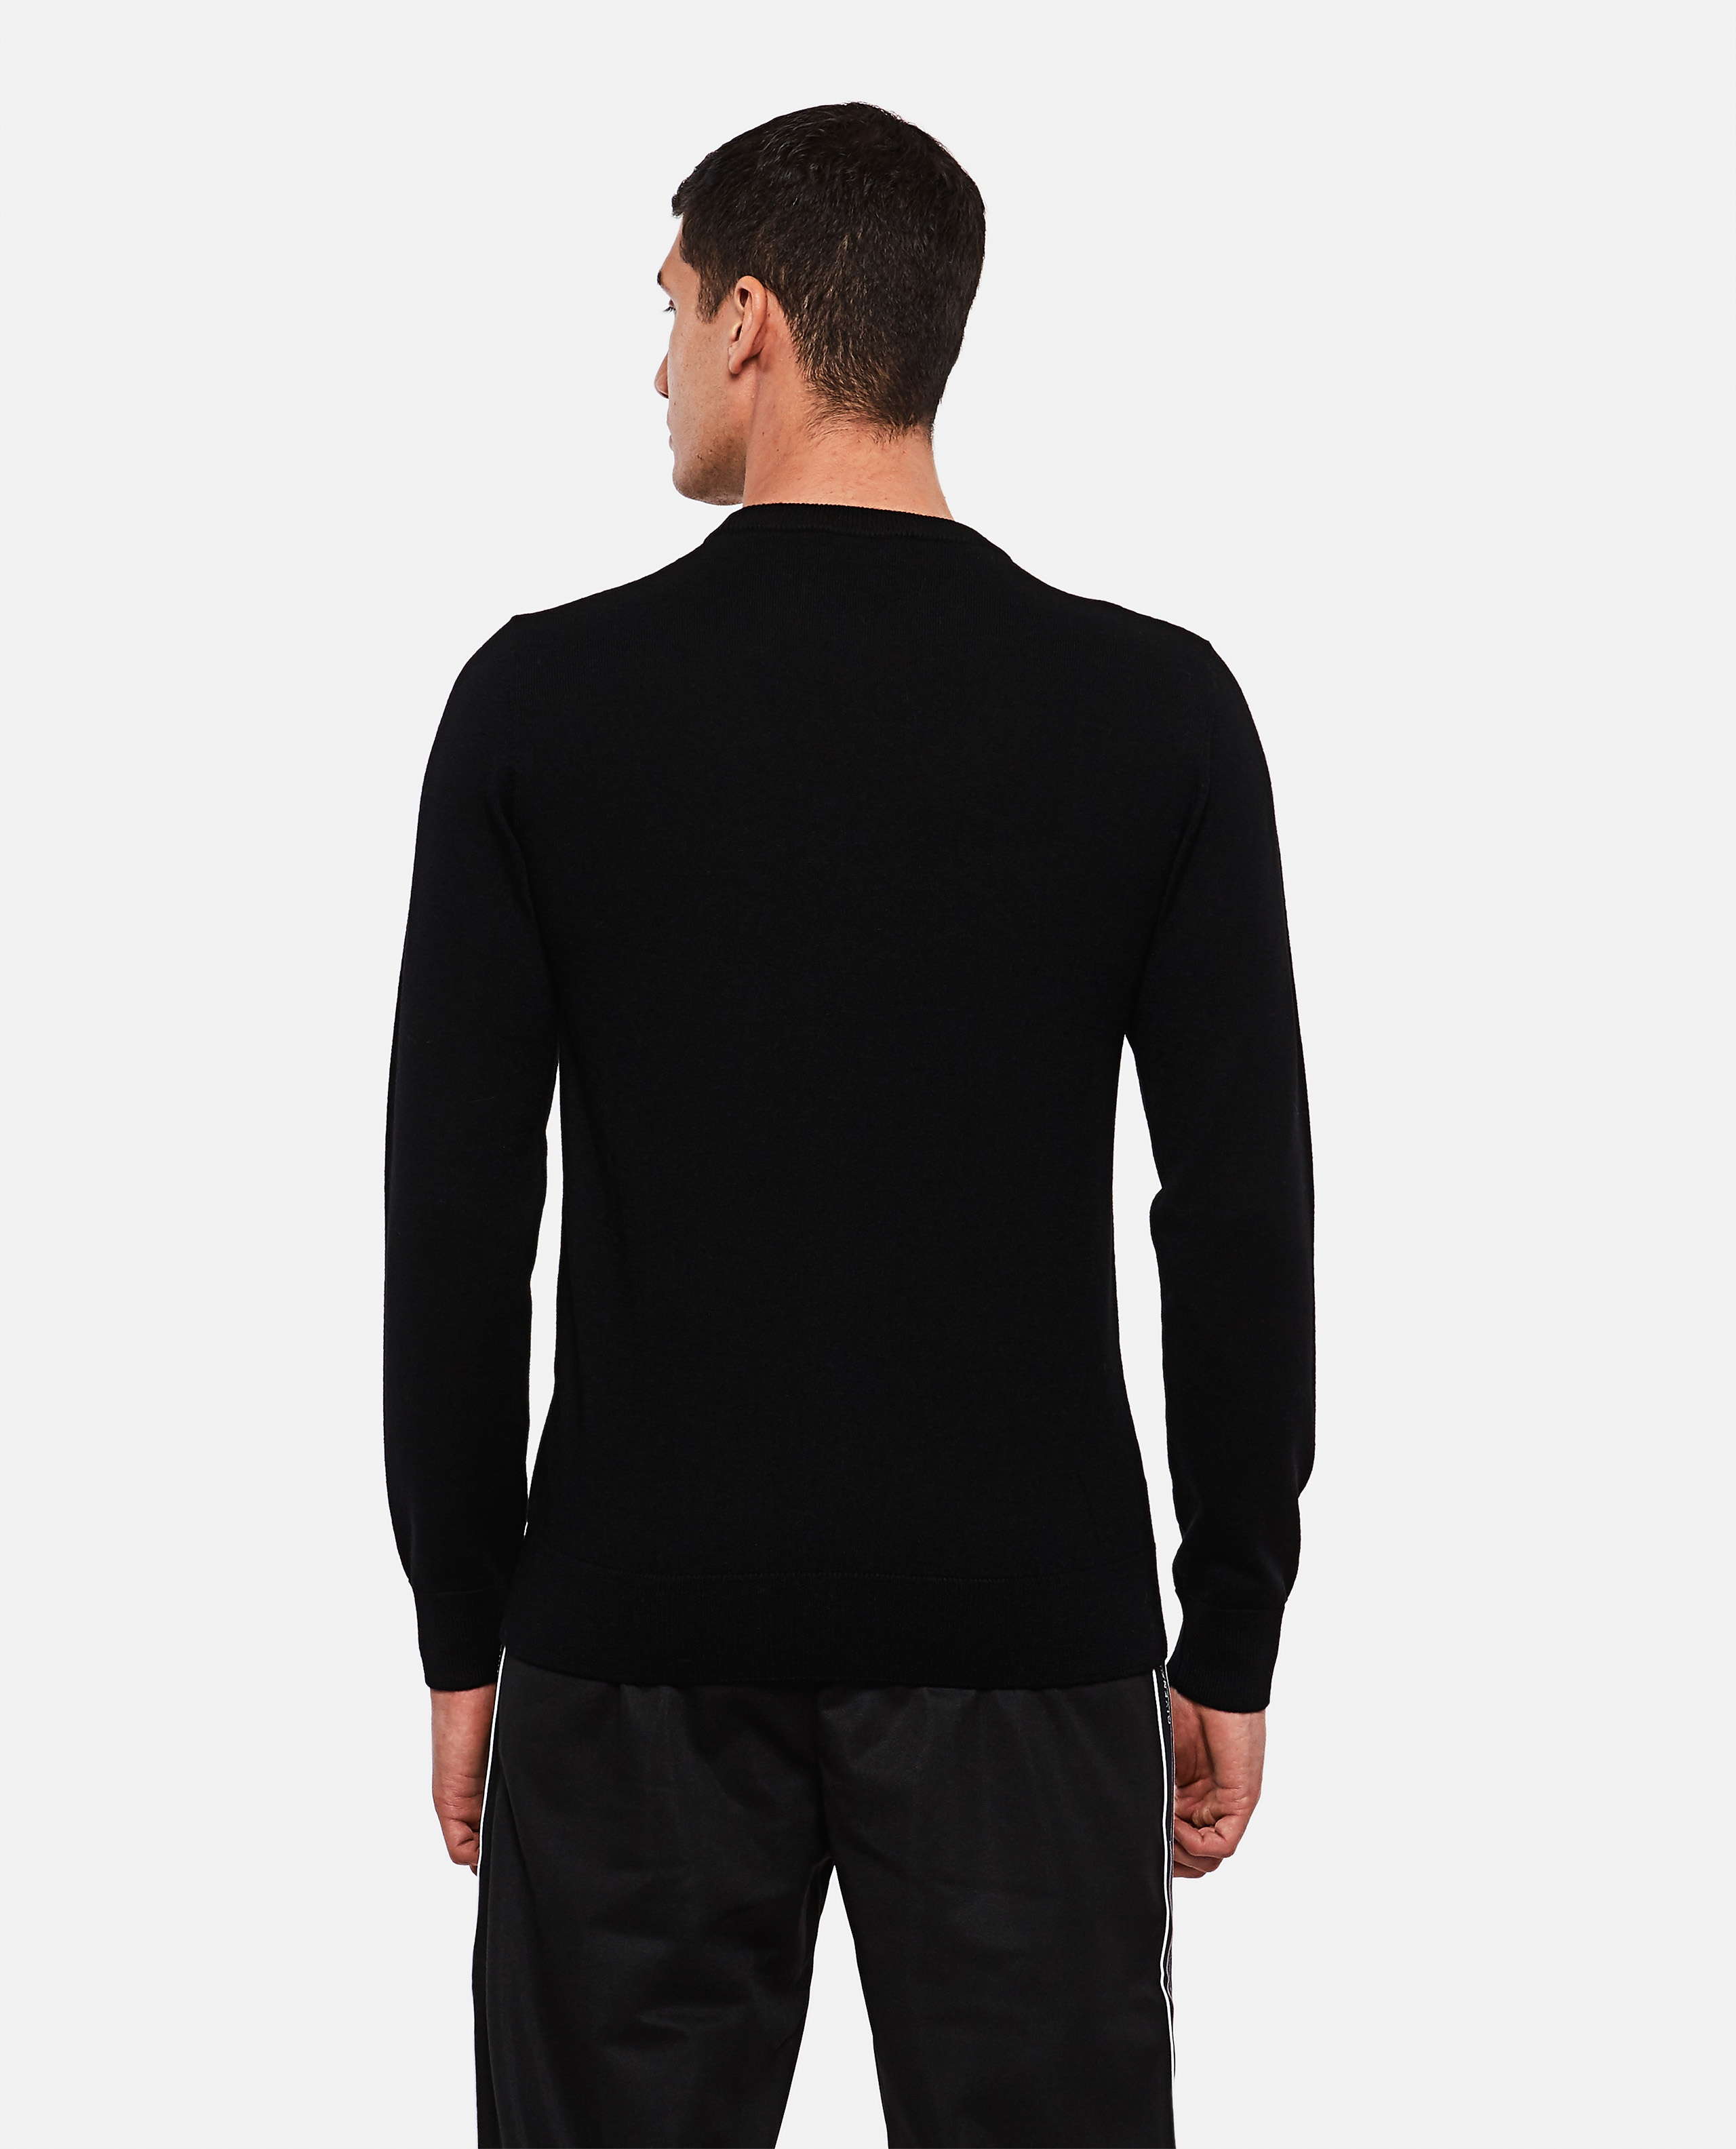 Jersey pullover Men Givenchy 000196770033492 3